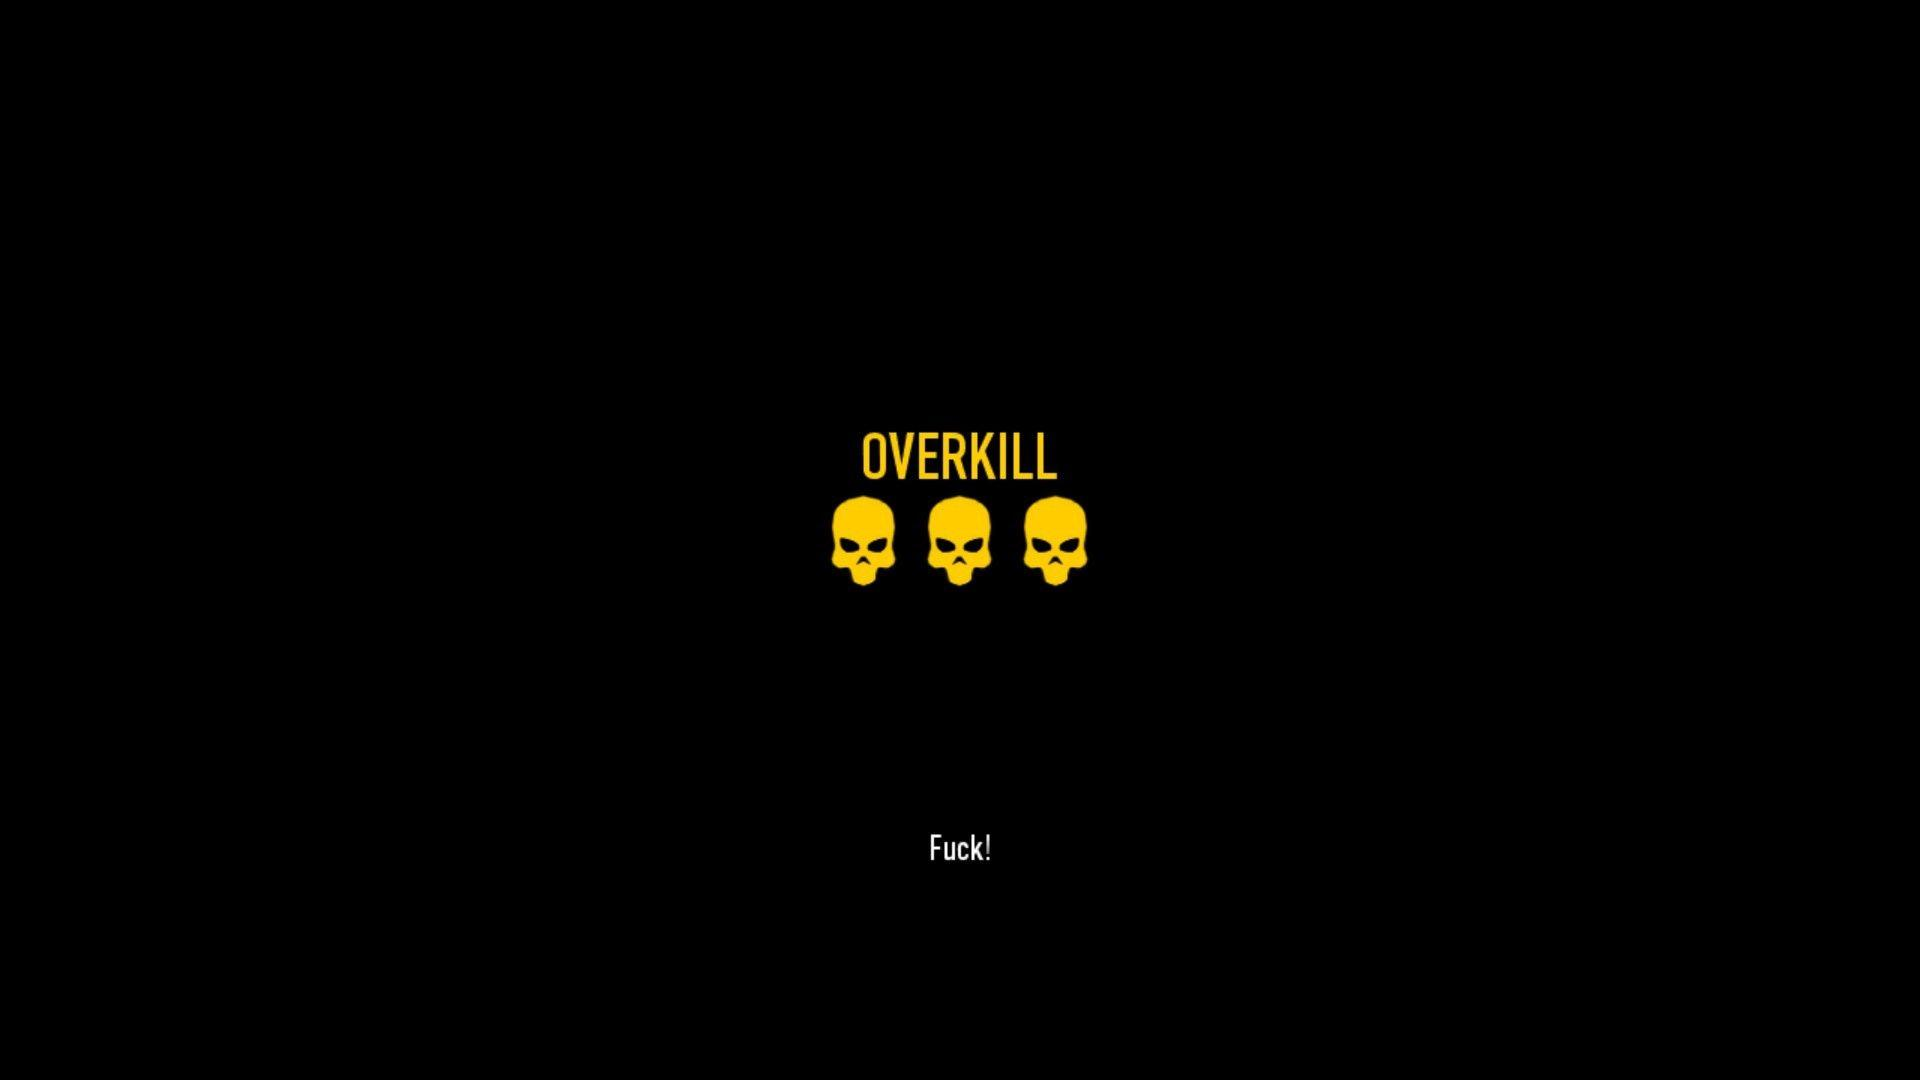 Wallpapers For > Overkill Wallpapers